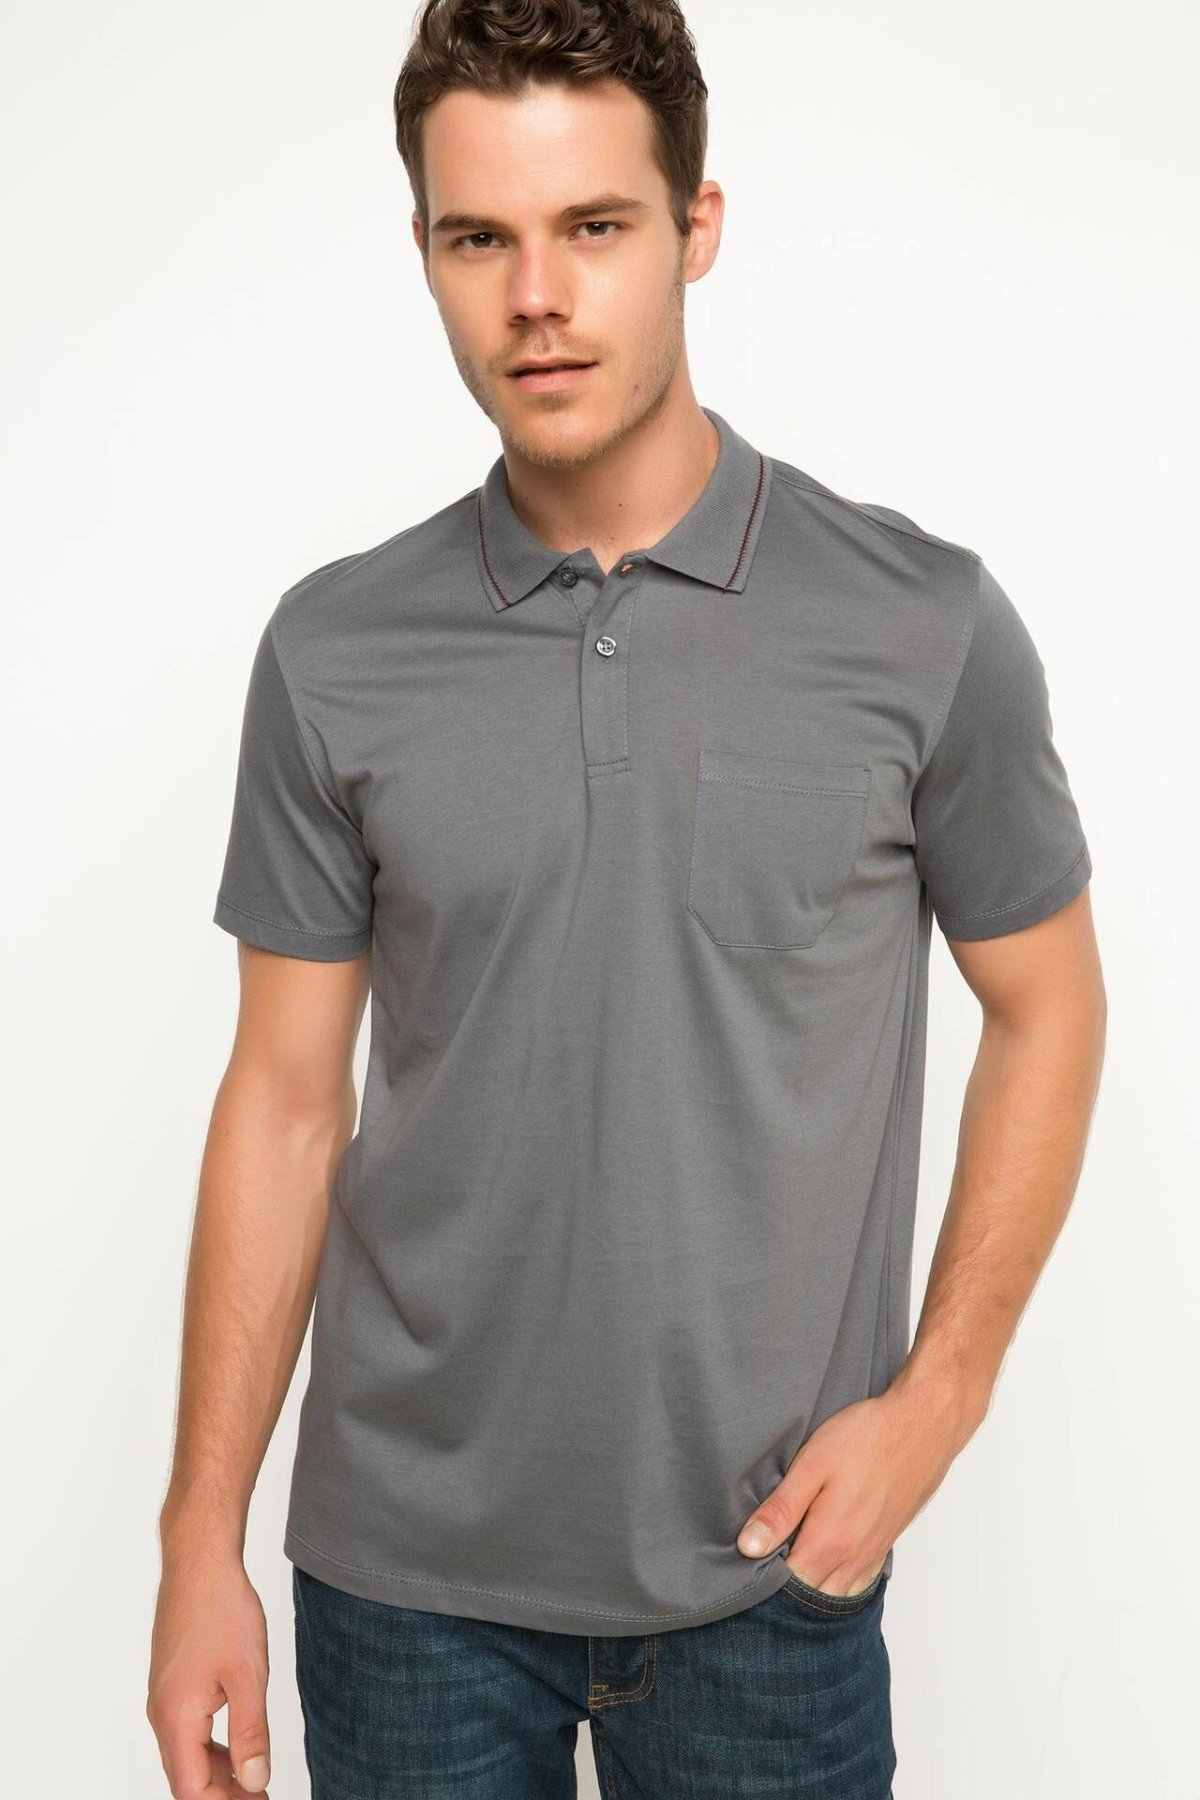 DeFacto Fashion Silver Grey Man Summer Top Tees Turn-down Collar Knitted Pocket Formal Polo Cotton Shirt -G9111AZ17SM